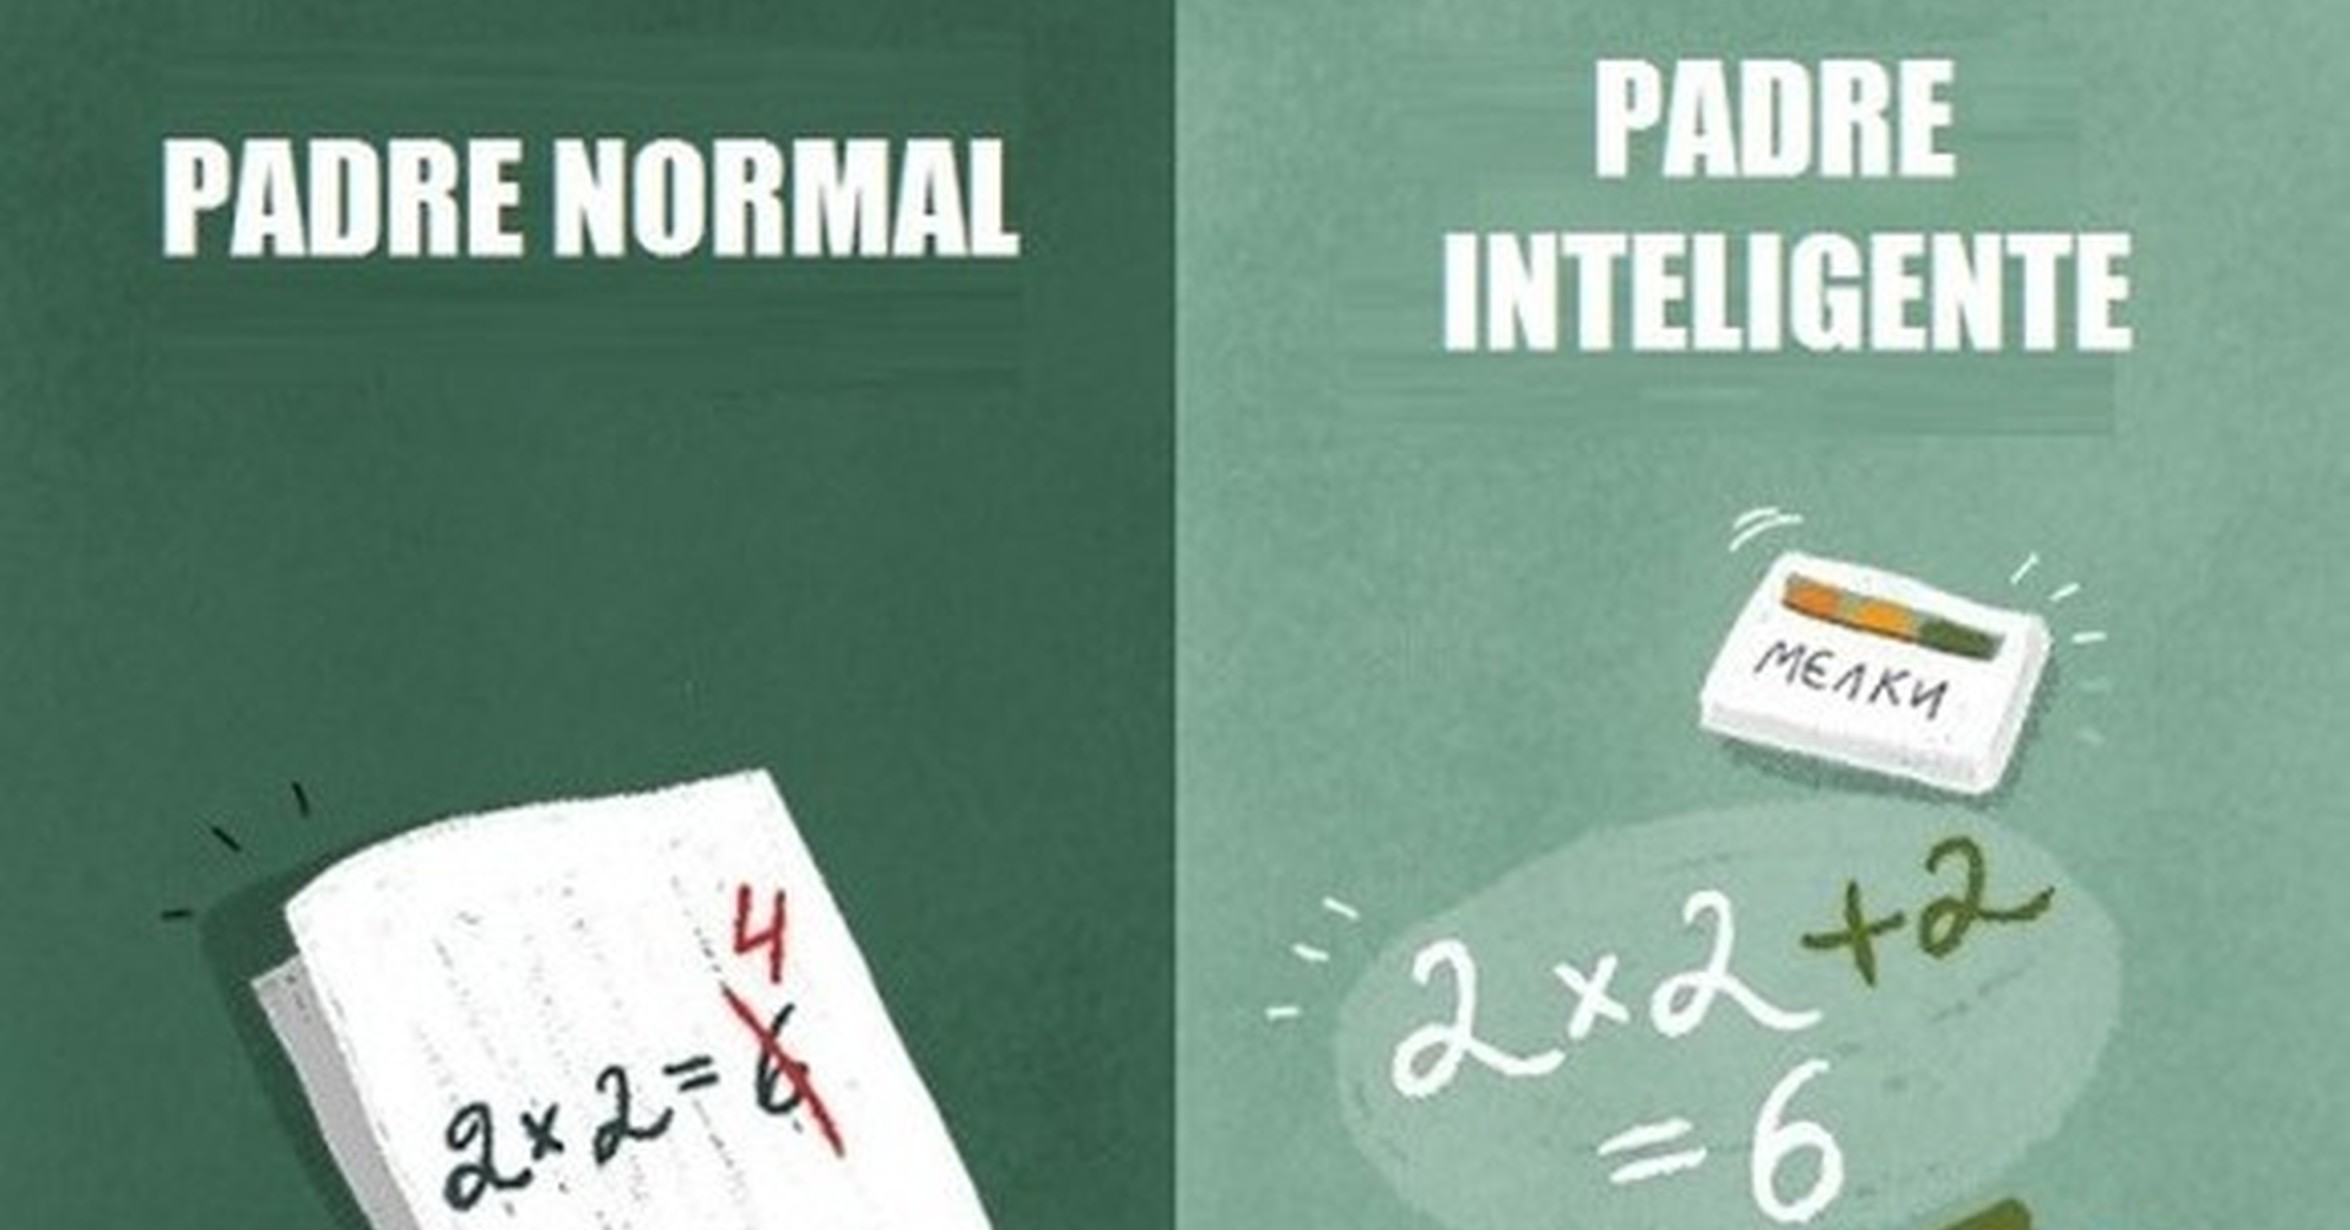 CR_1022151_11_diferencias_entre_un_padre_normal_y_un_padre_inteligente_thumb_fb